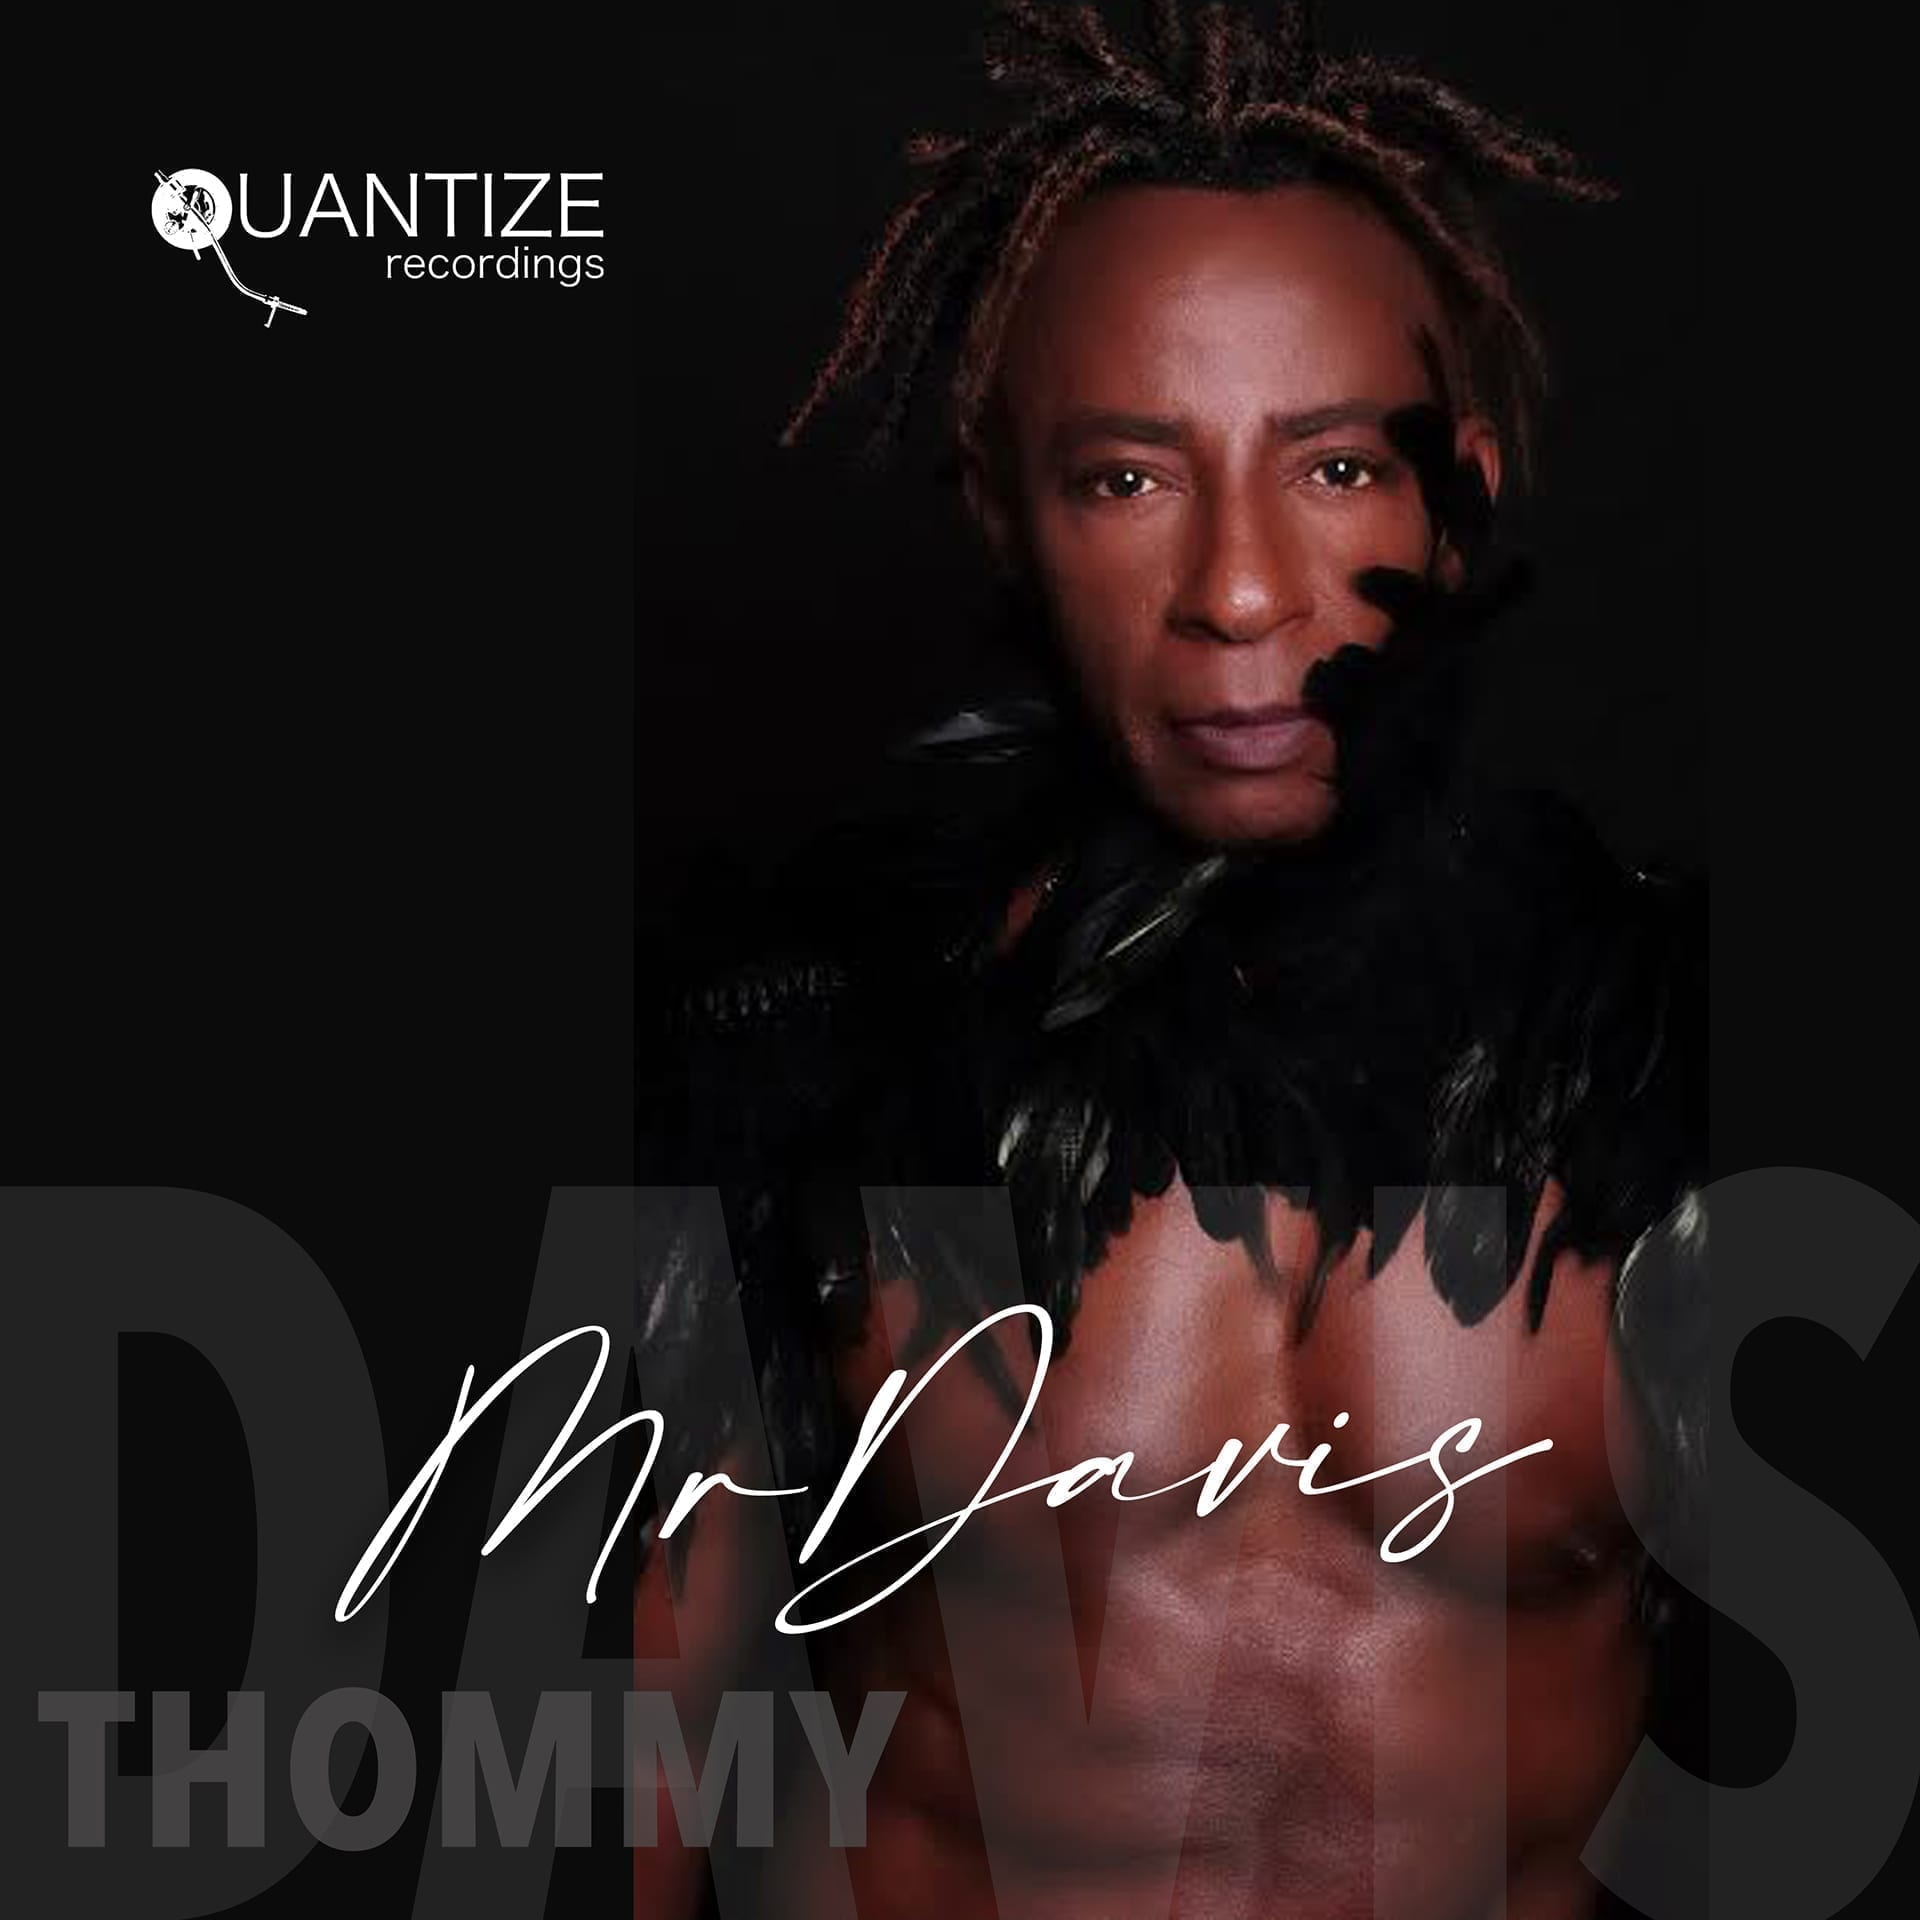 Thommy Davis 'Mr Davis' Album' Quantize Recordings